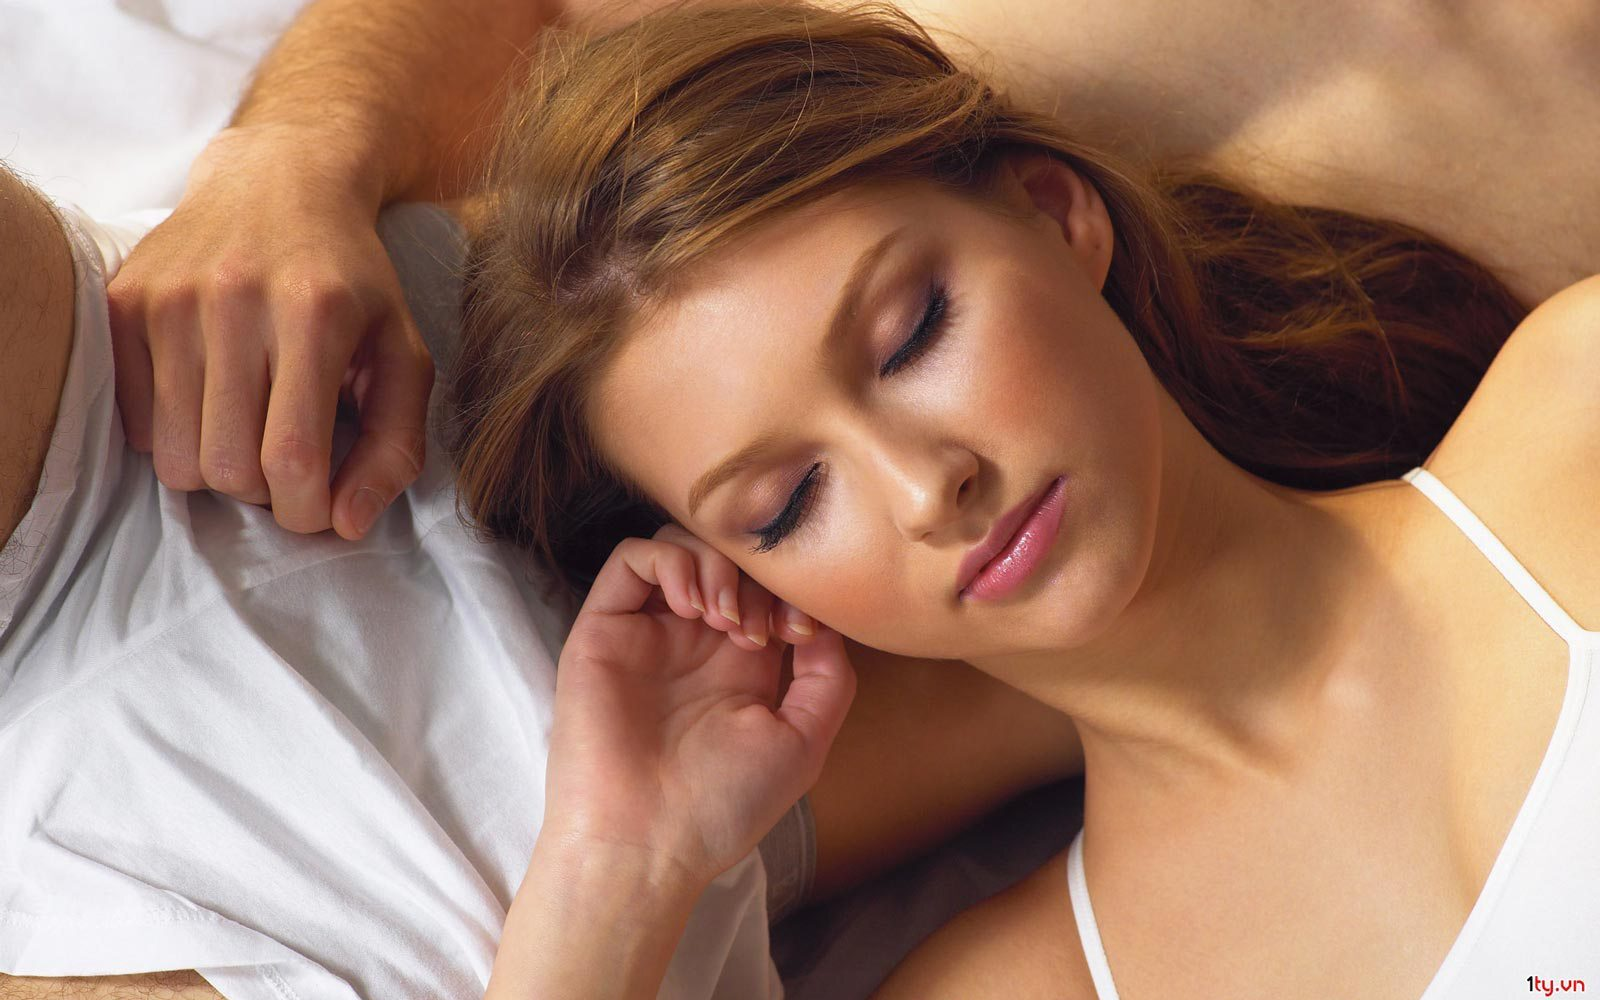 8 Things That Kill Her Libido Instantly